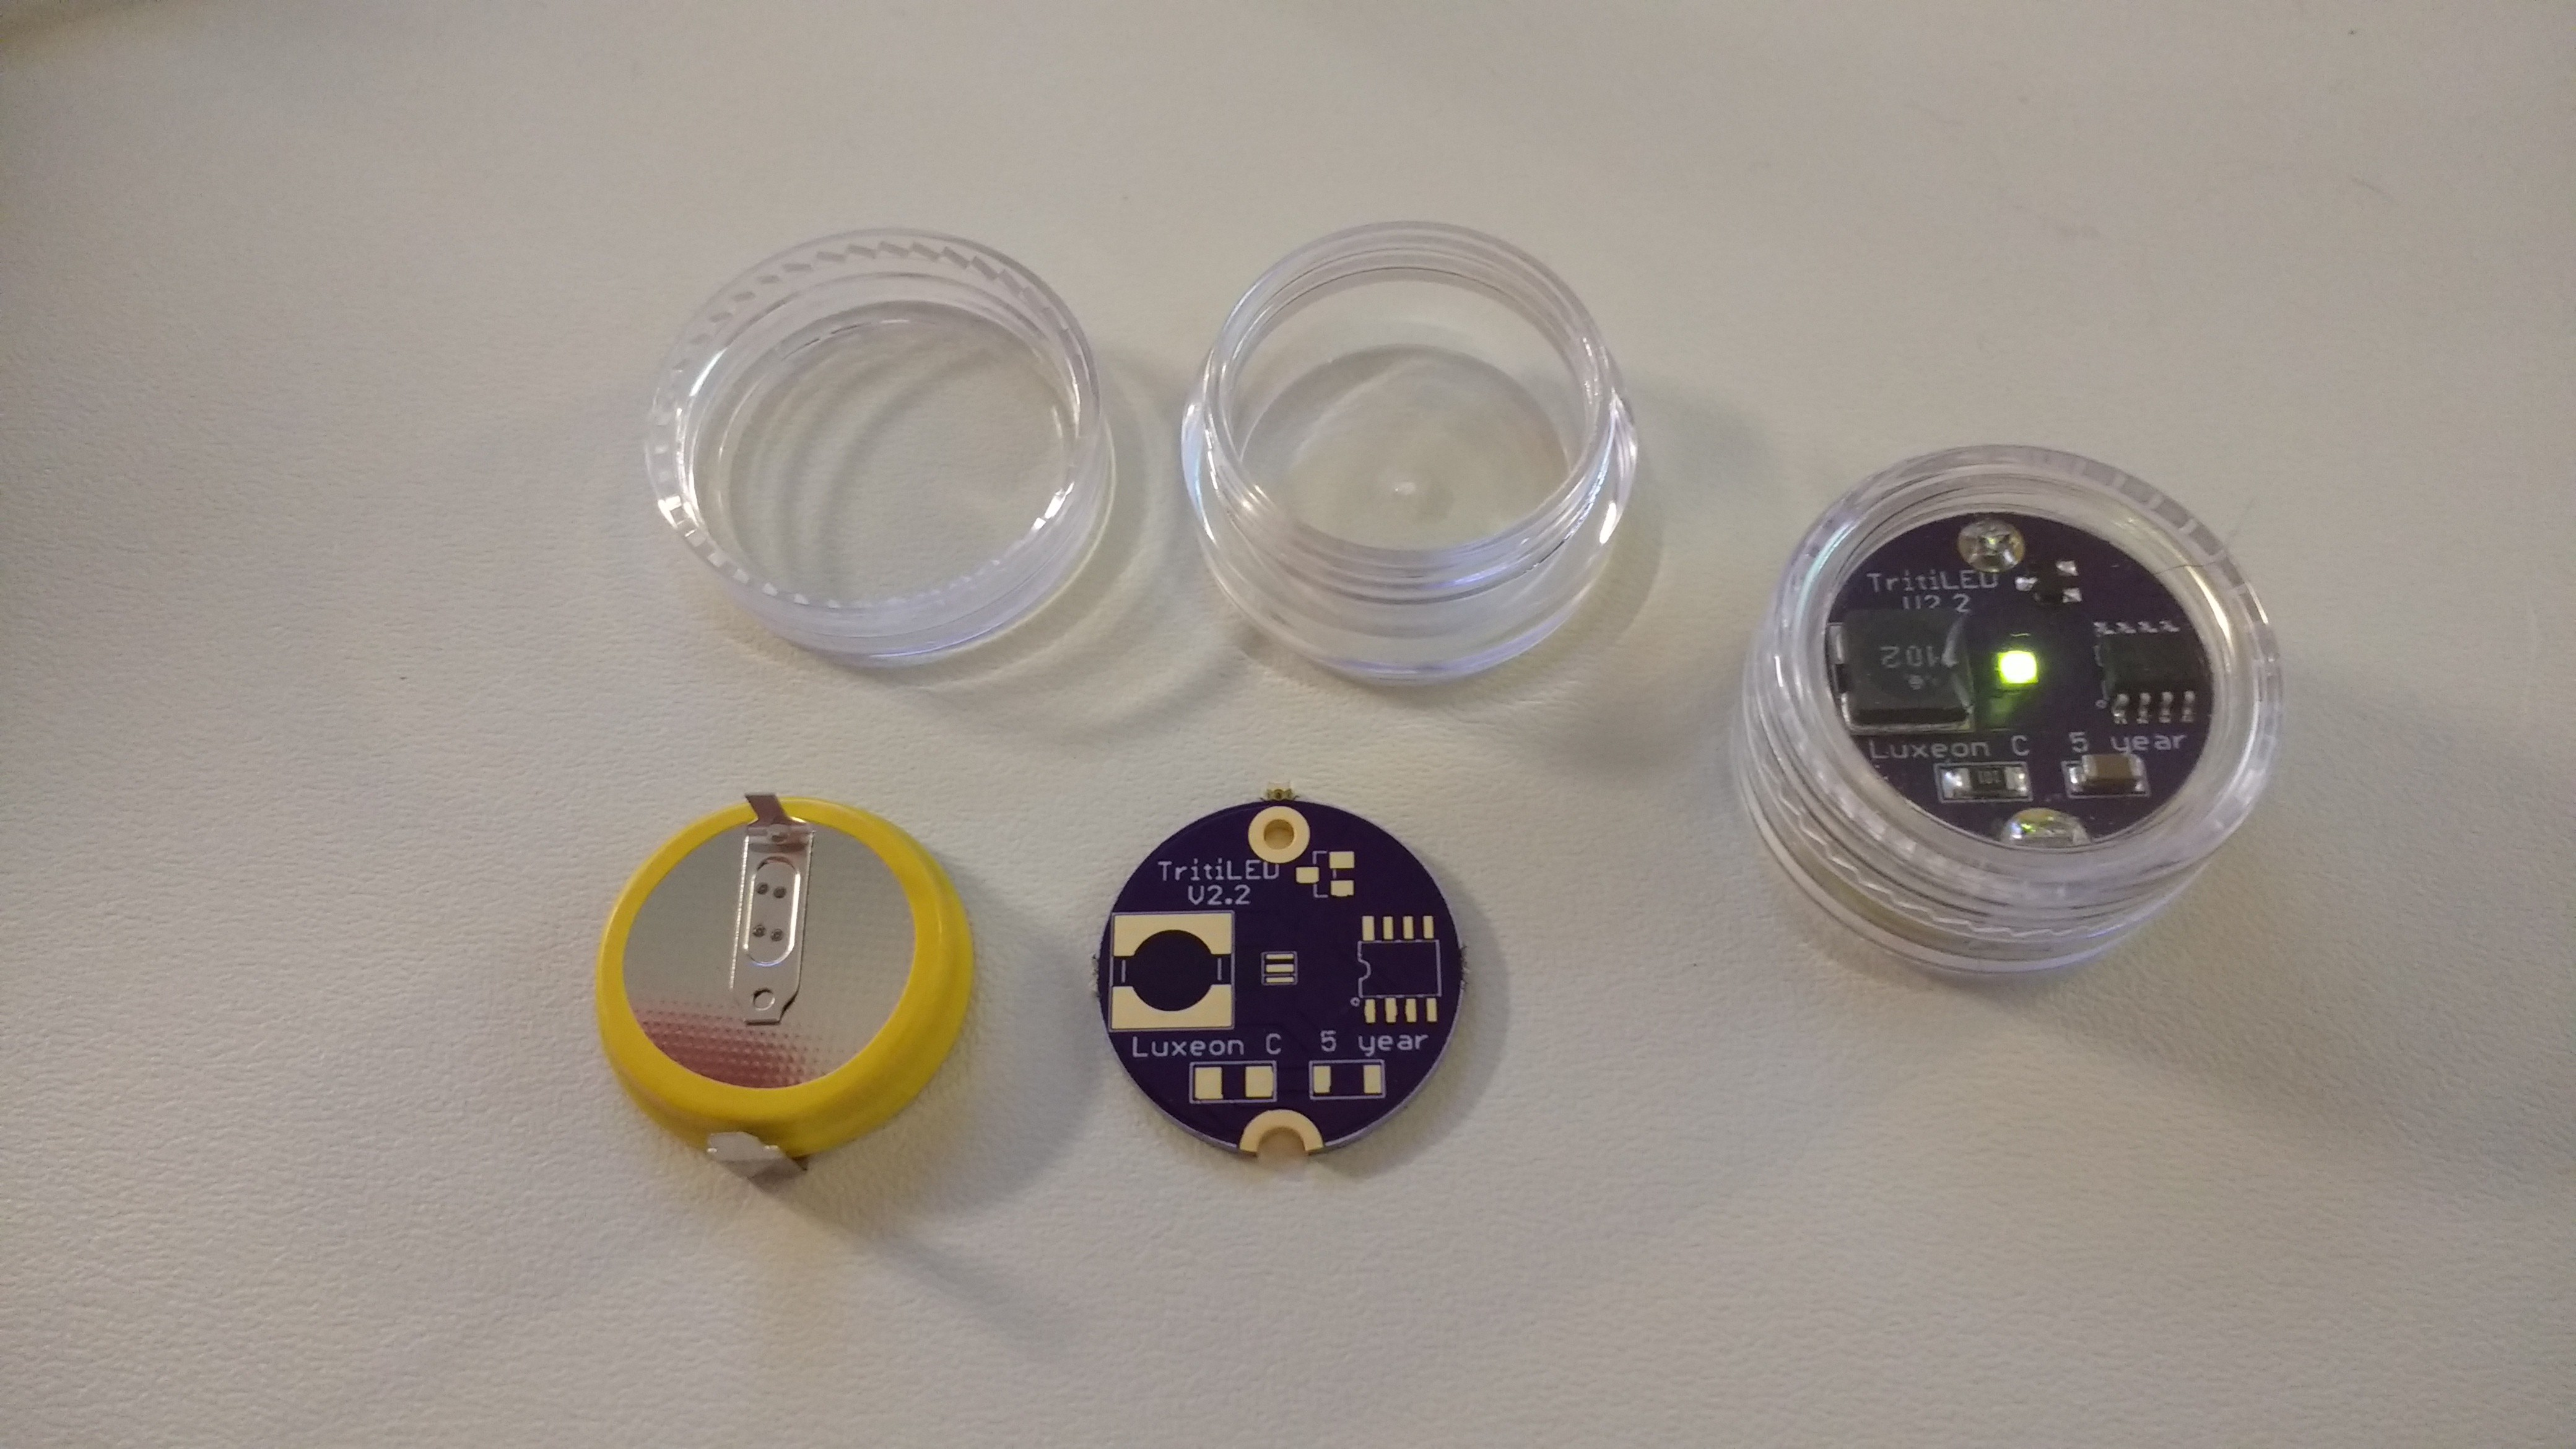 Cr2354 Editions Details Hackadayio